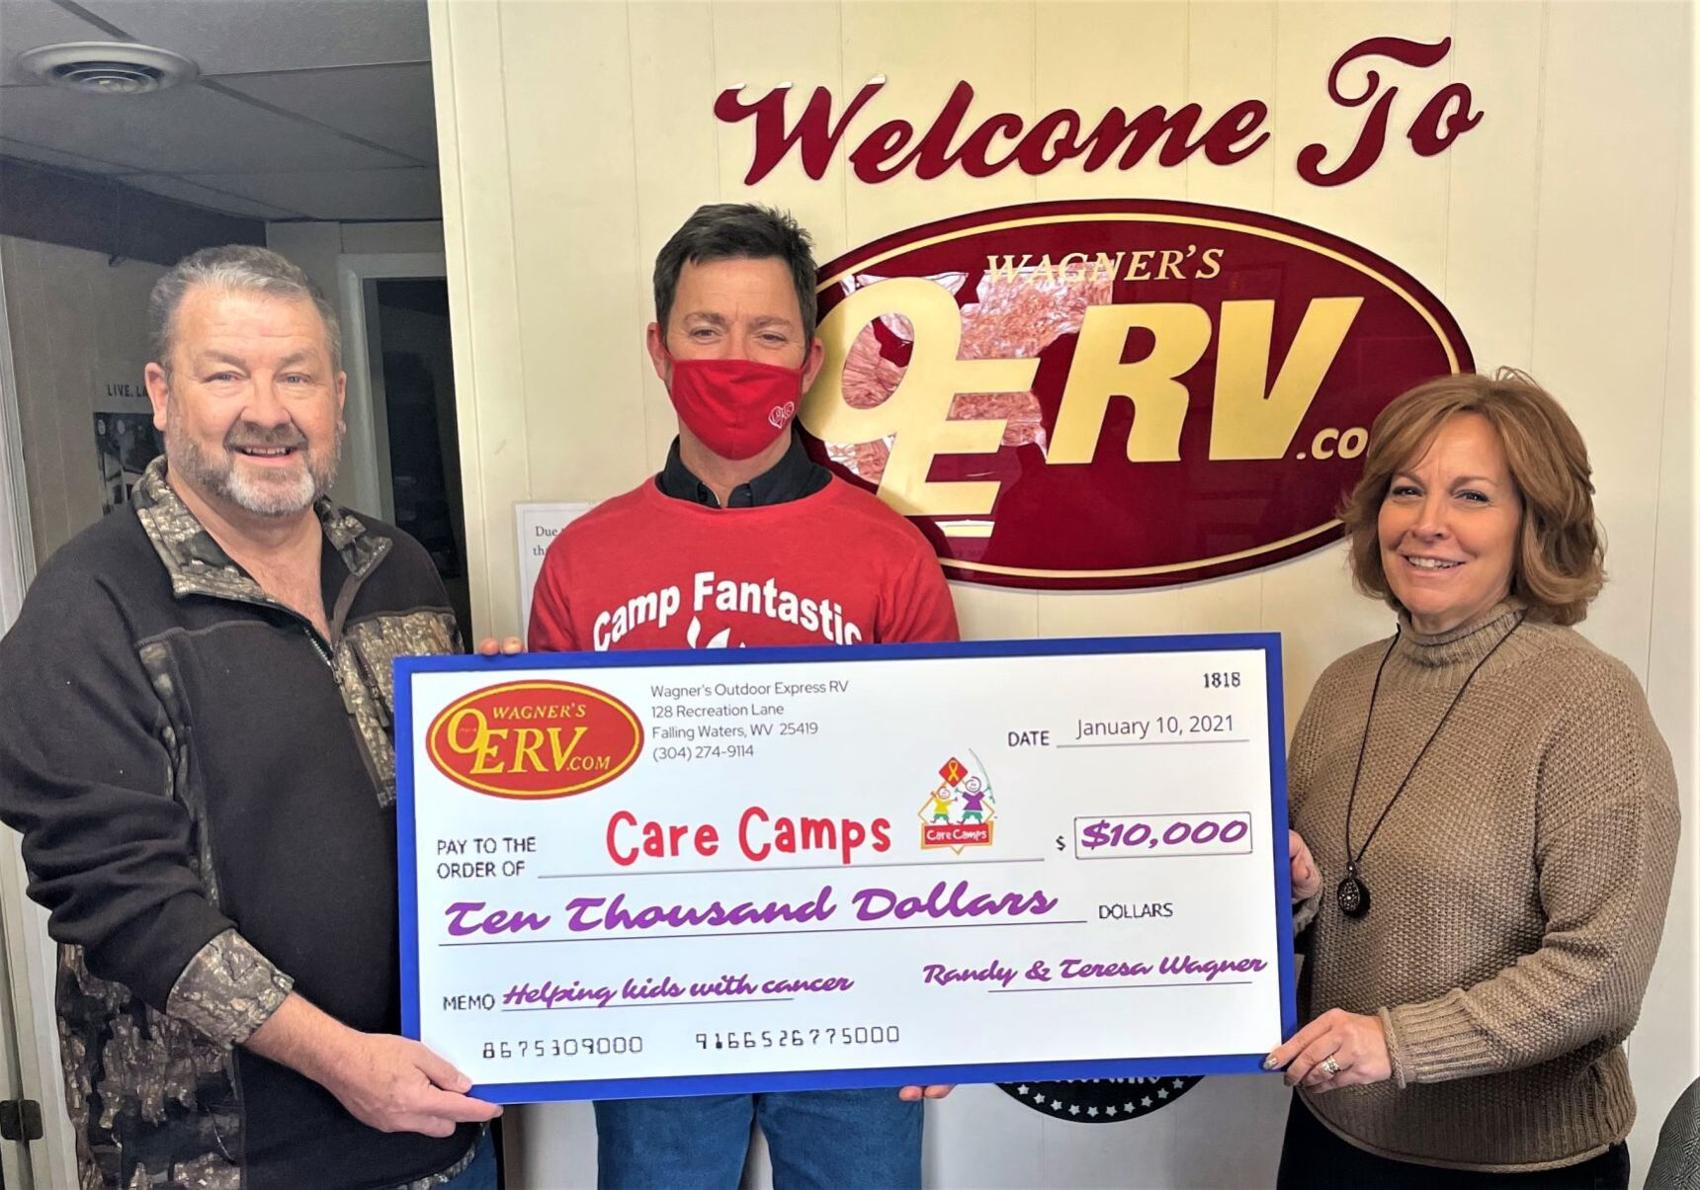 Local businessman donates contest earnings to Care Camps